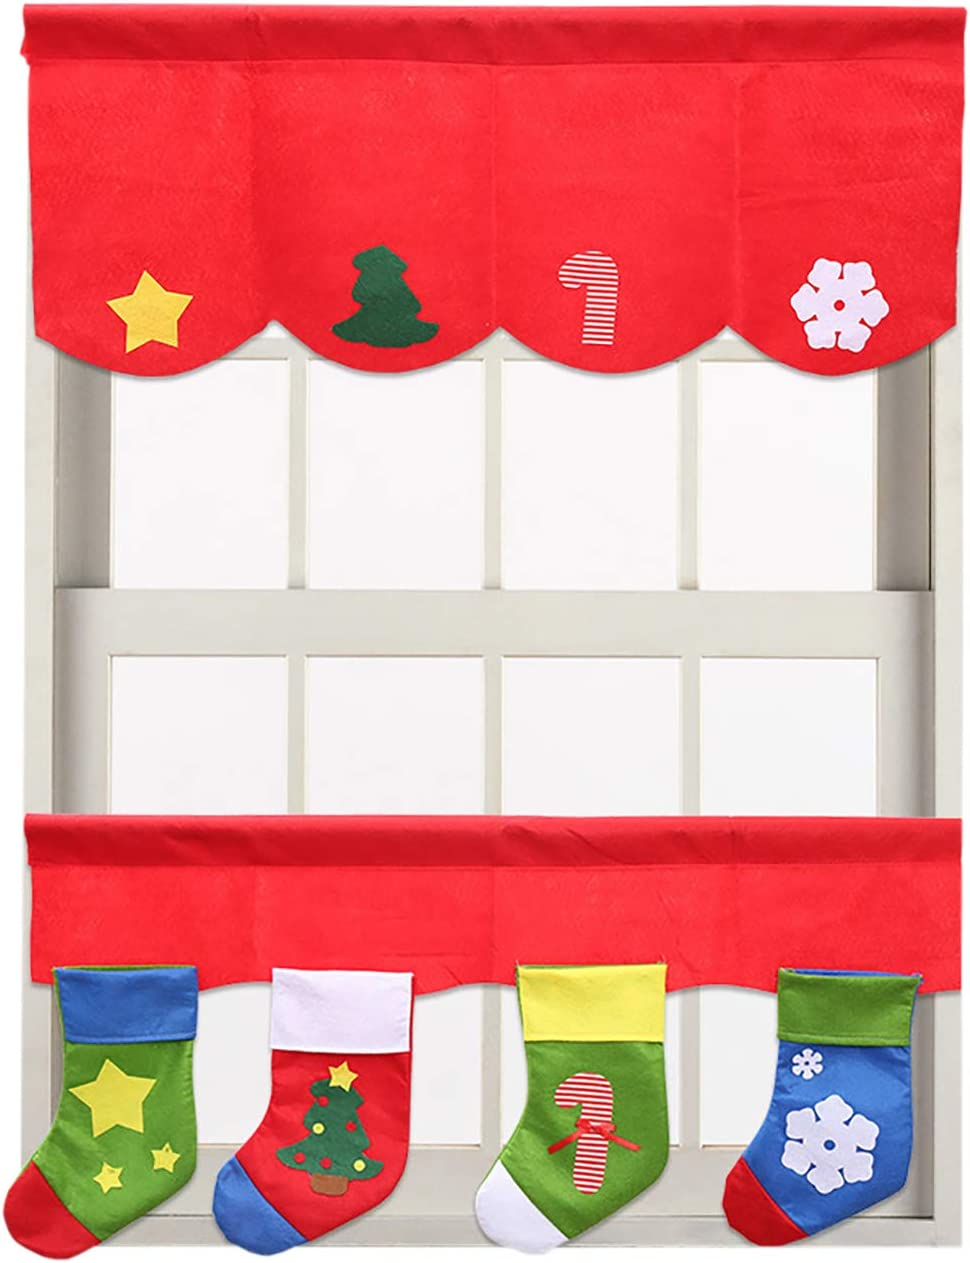 Picturesque Christmas Stockings Curtain Valance Window Decorations Decals 2pcs Set